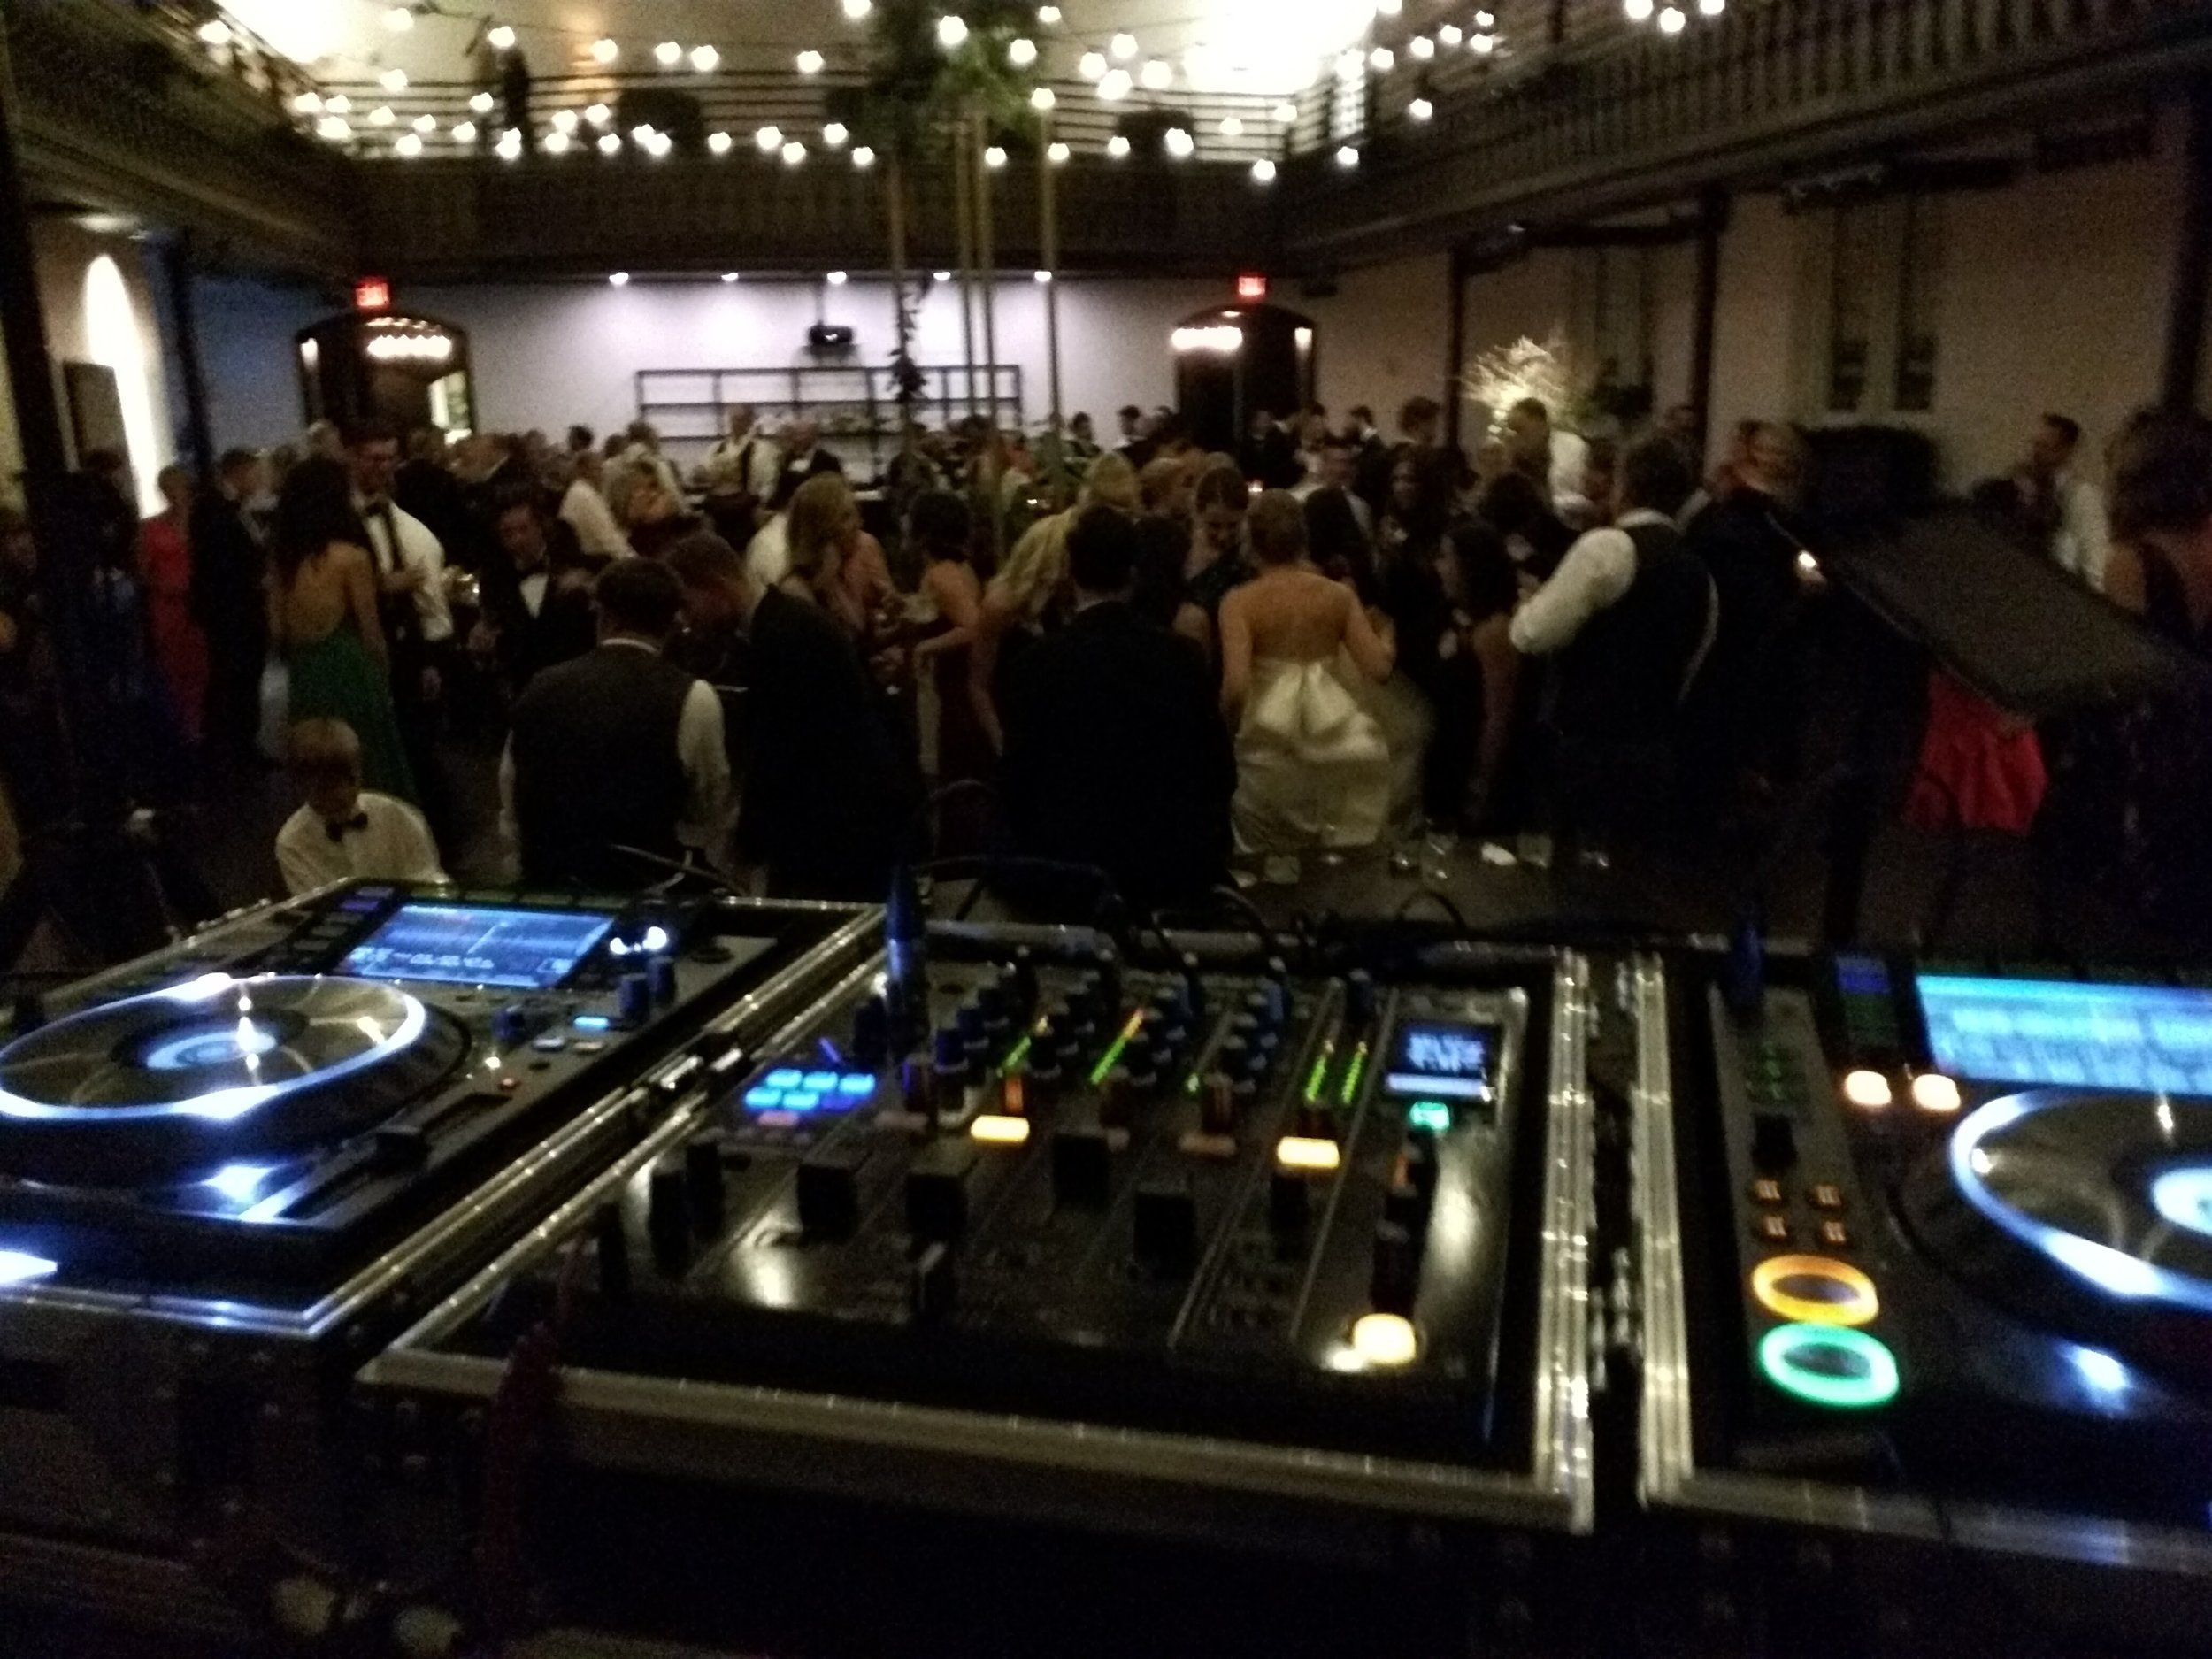 performs for Cincinnati Wedding at historic Transept (With